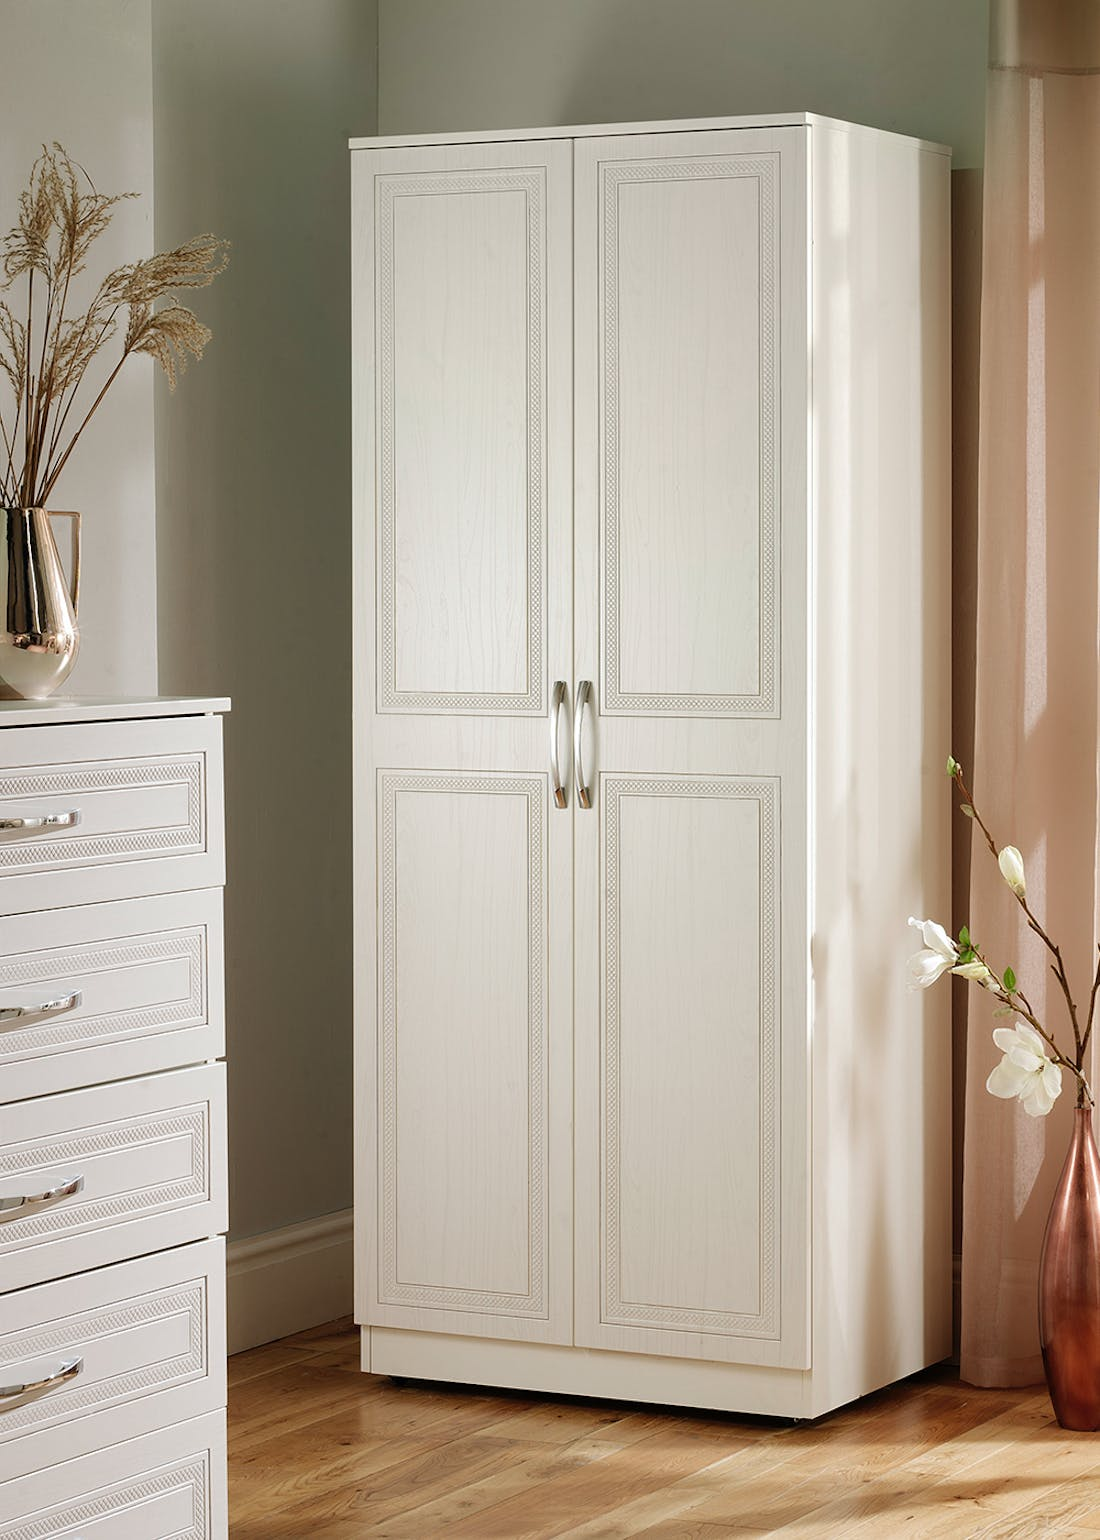 Swift Ashford Triple Wardrobe (182.5cm x 111cm x 53cm)